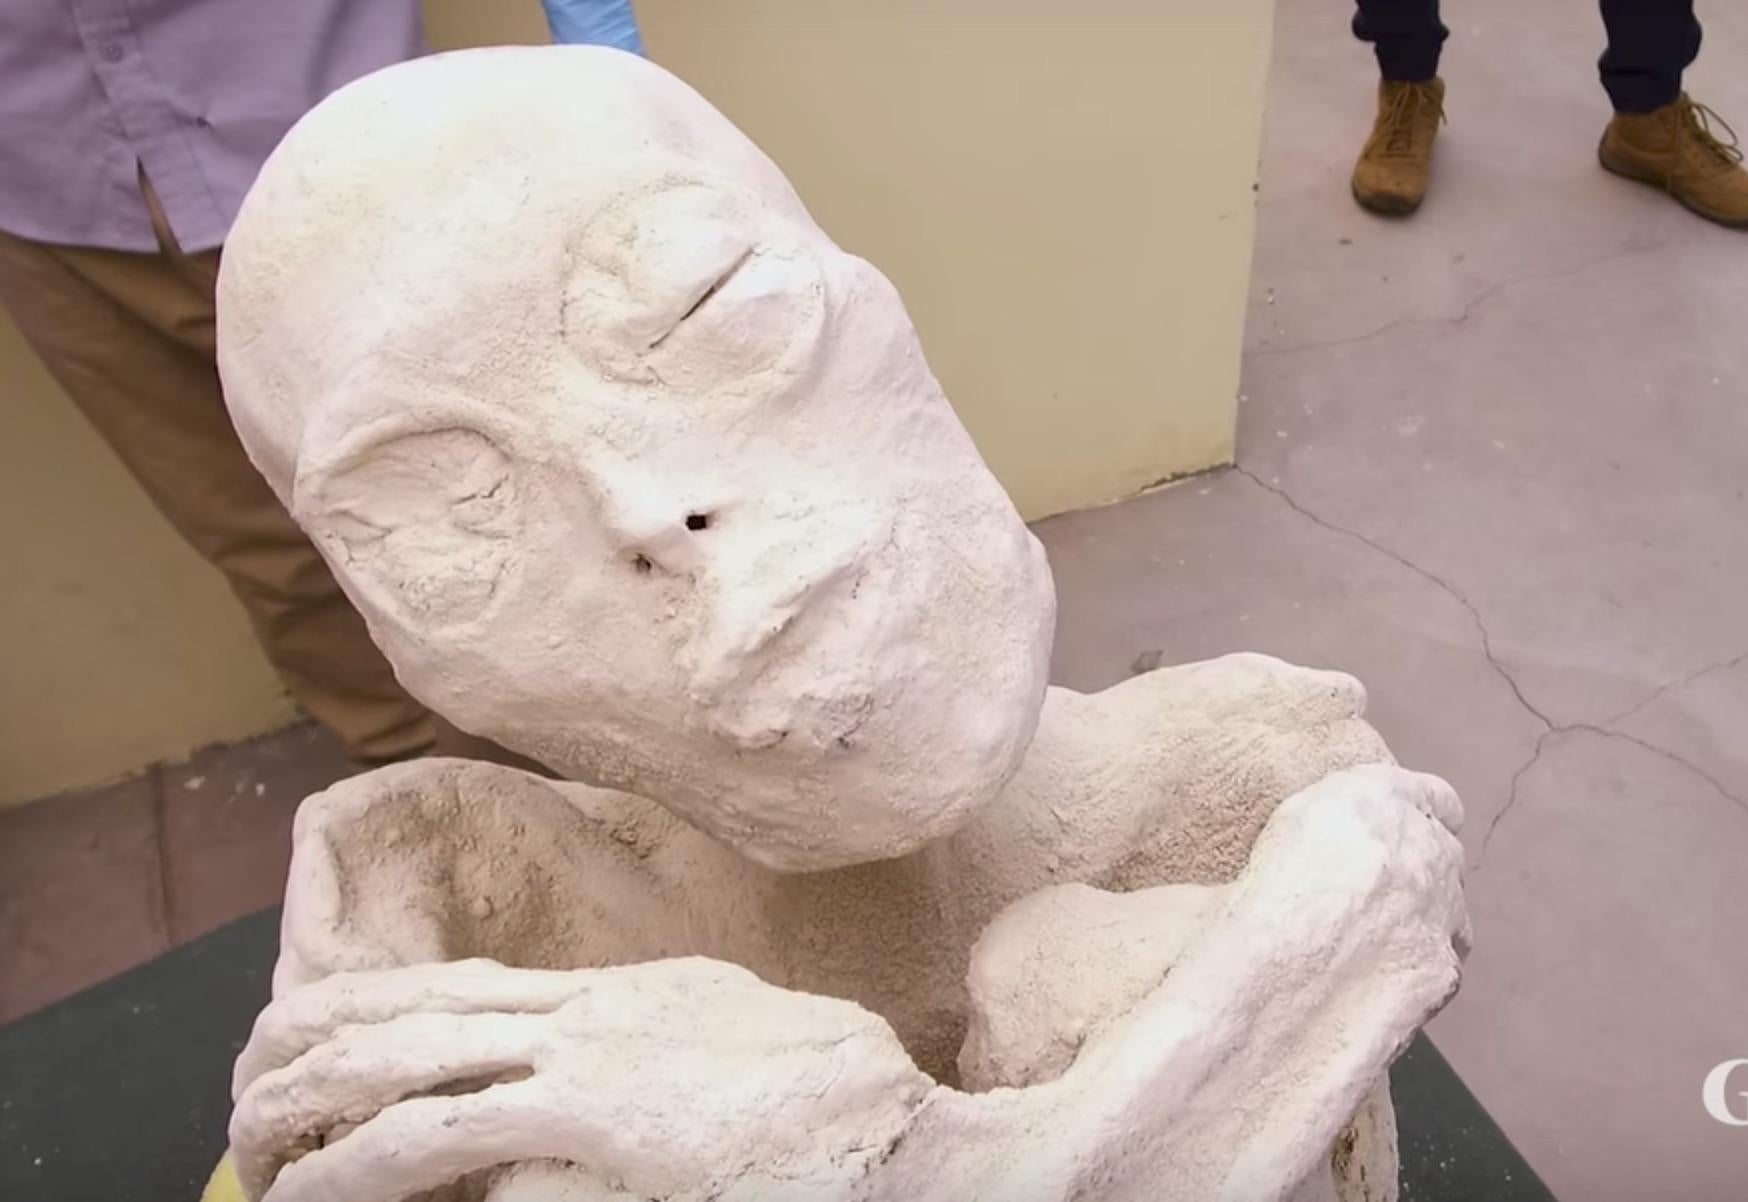 Ancient Gaia Statue group claims to have found an ancient, mummified alien – but